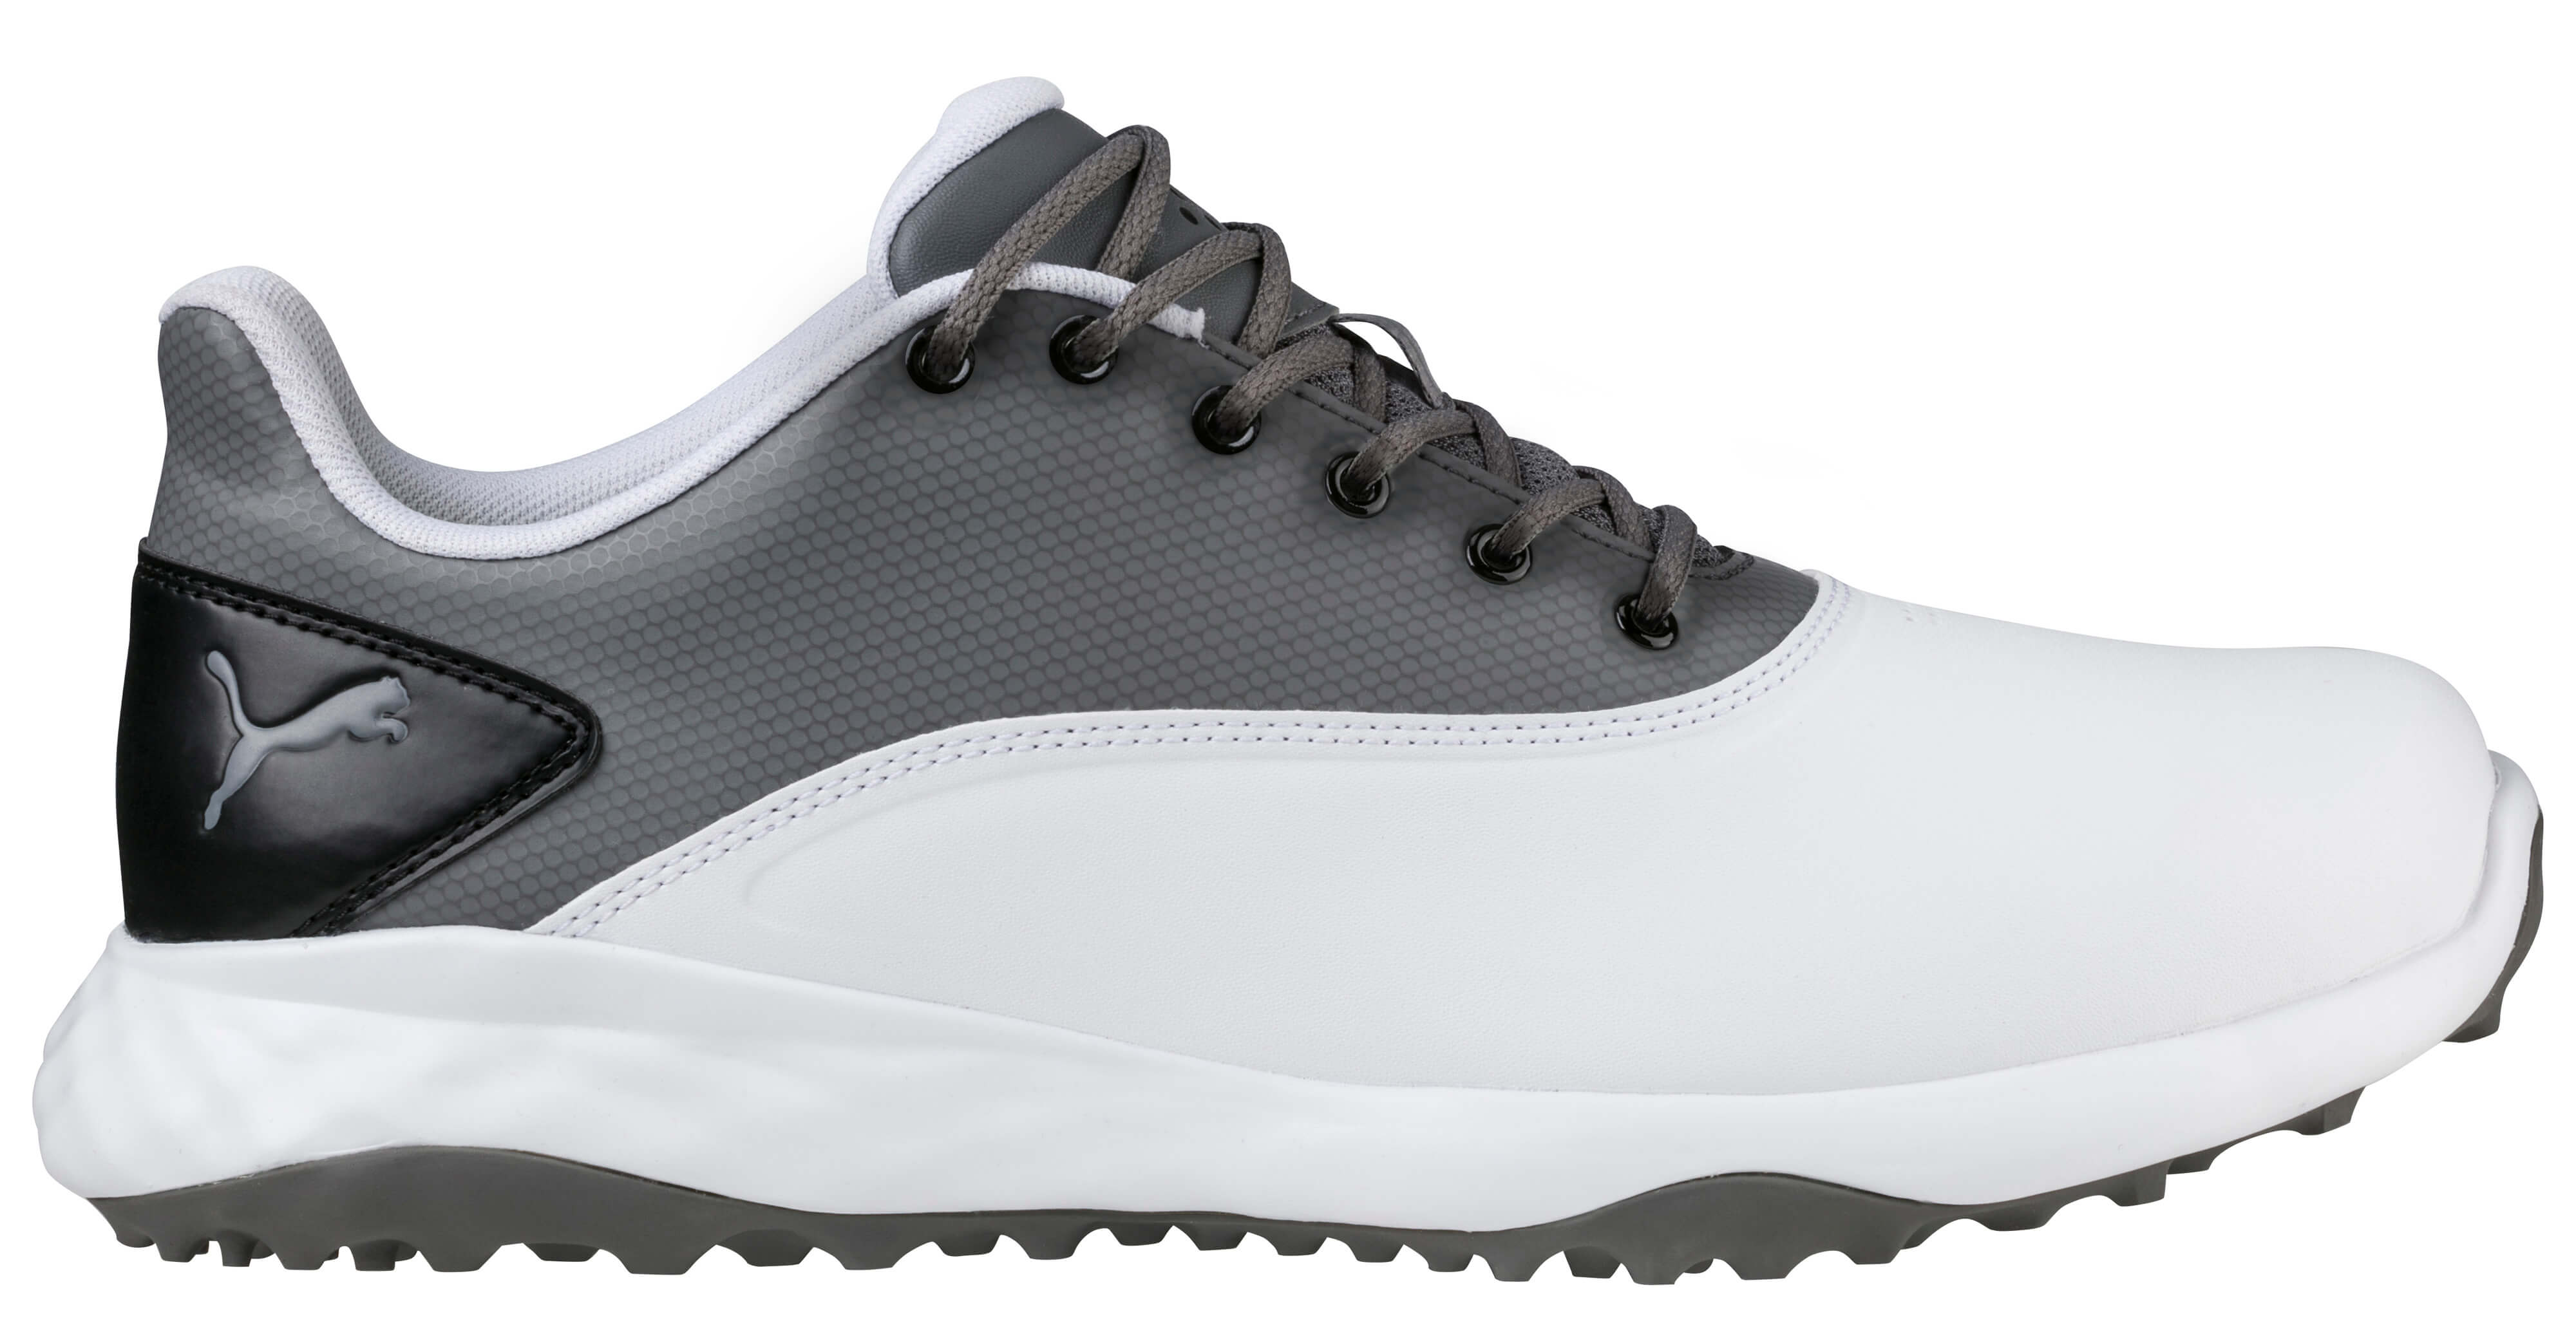 6adaeed89623 Details about Puma Grip Fusion Golf Shoes 2018 Men s Spikeless 189425 New- Choose  Color   Size